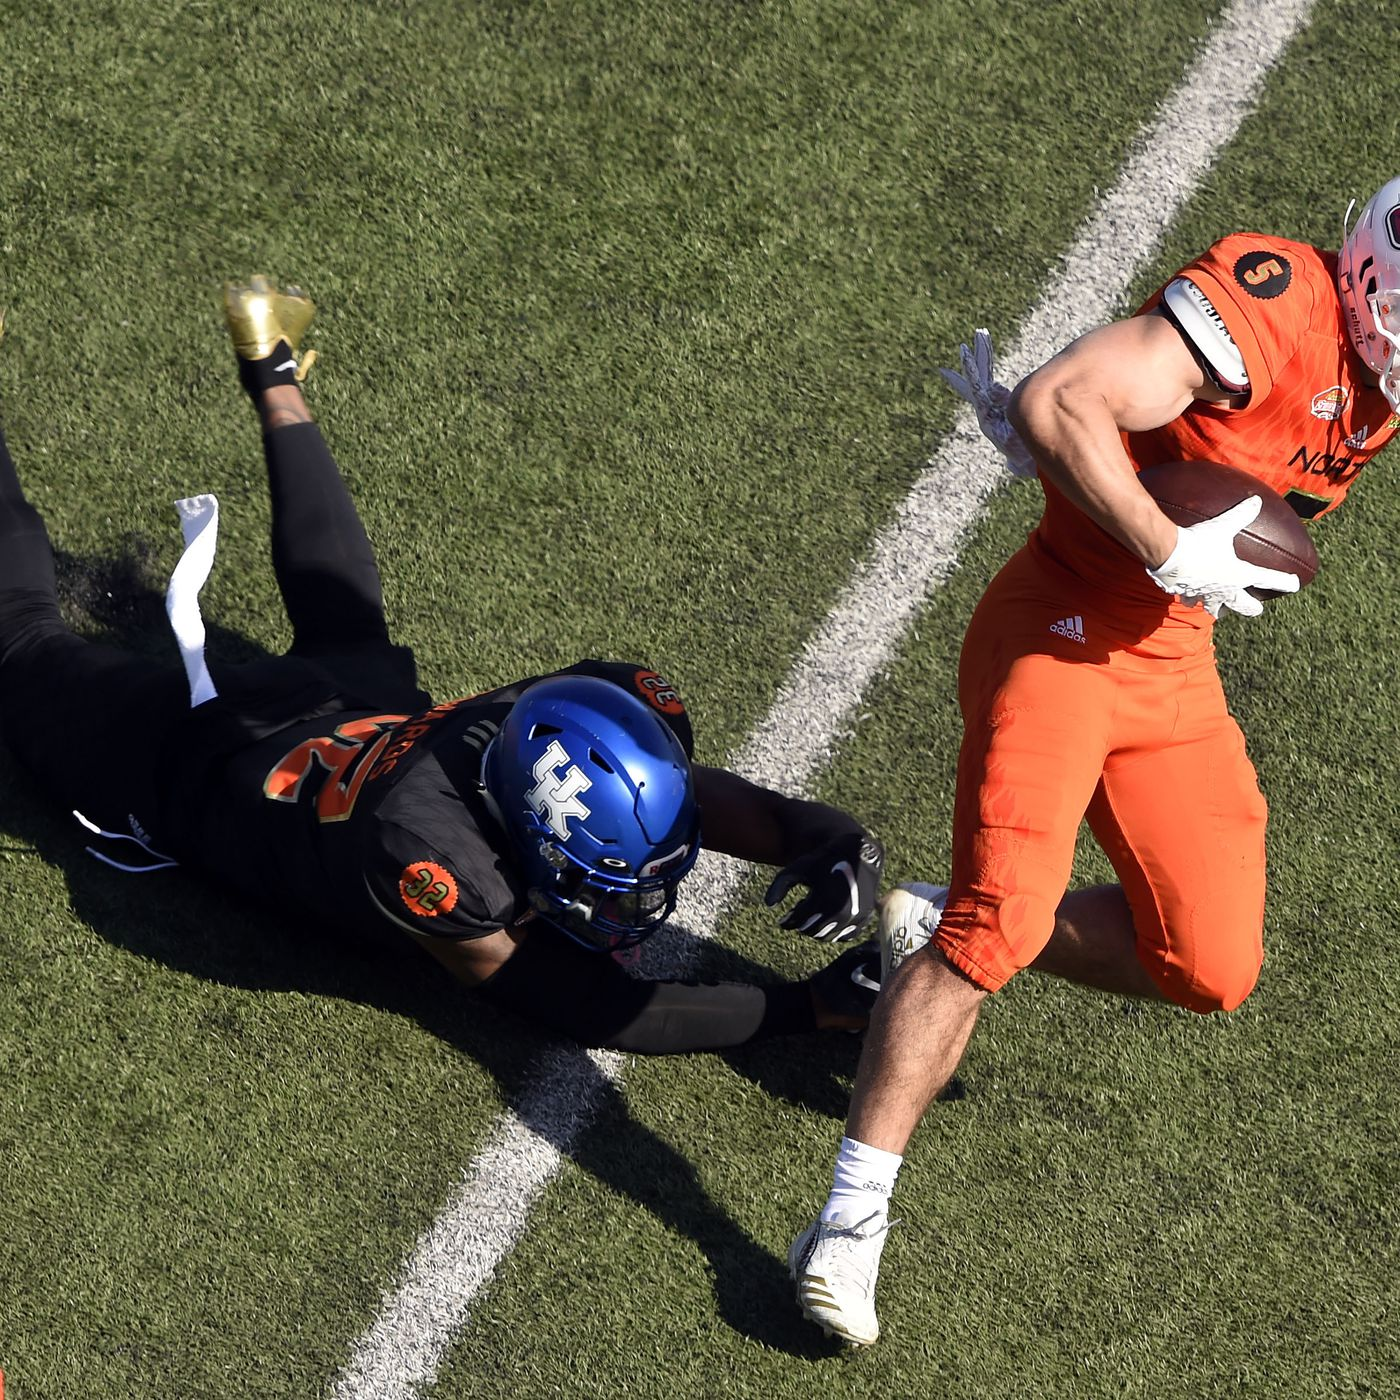 Senior Bowl Highlights Receivers That Stood Out That